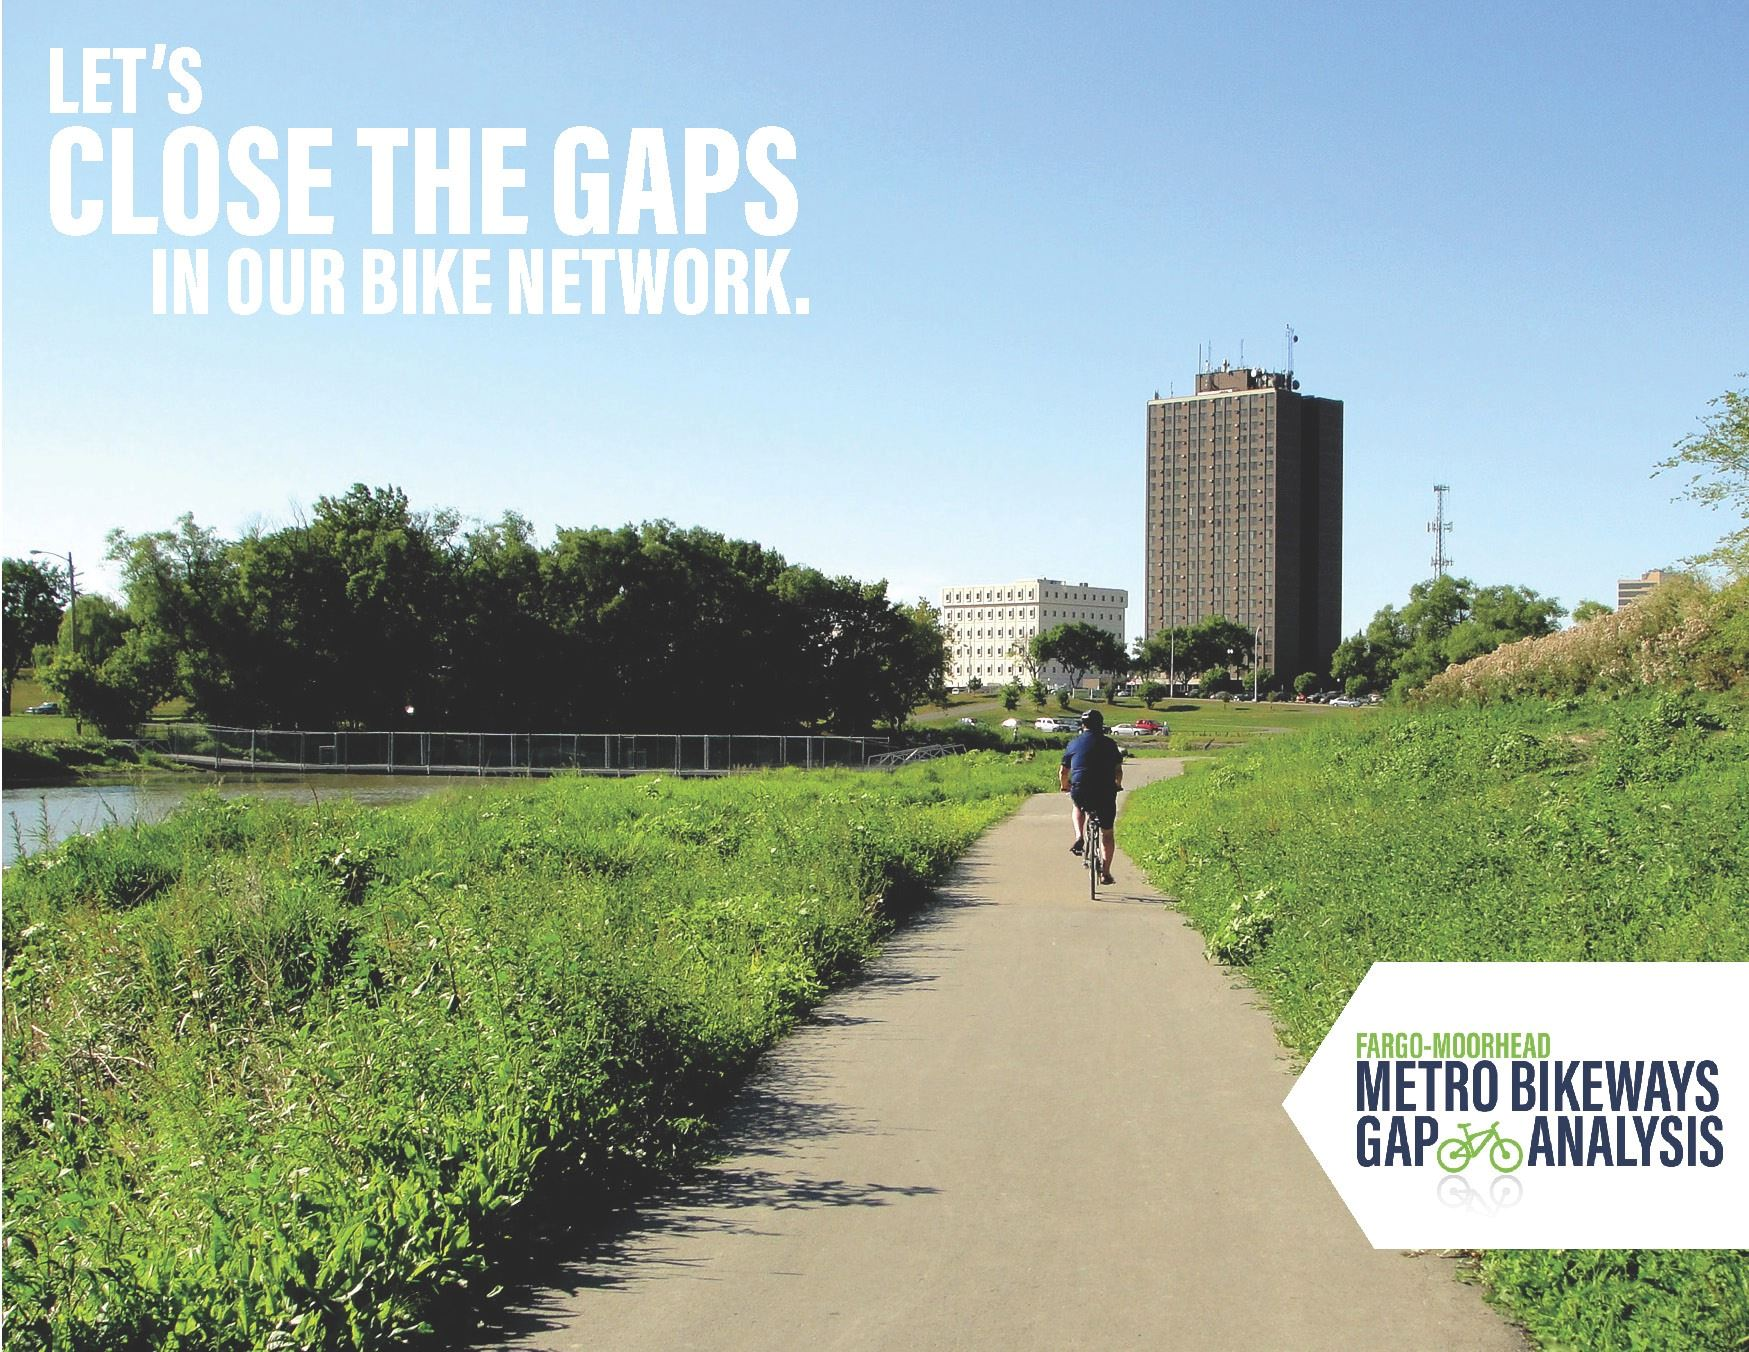 MetroCOG Bike Gap Analysis